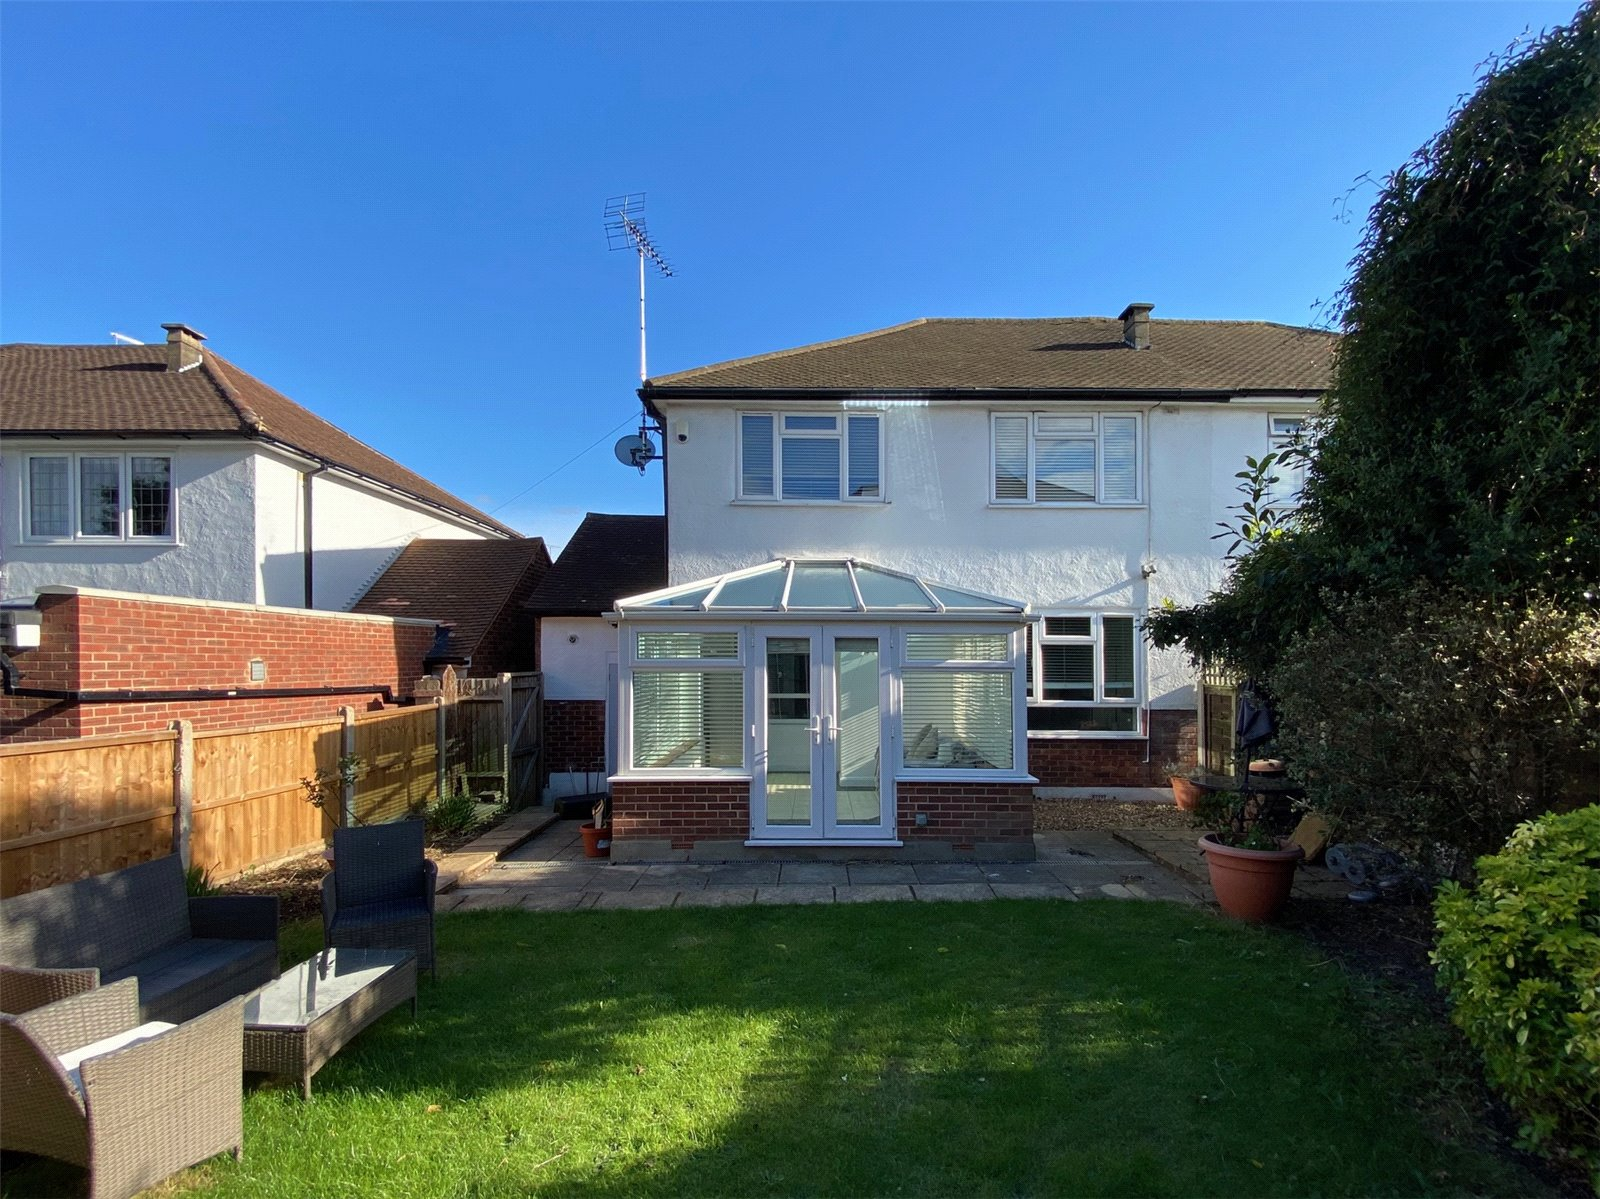 3 bed house for sale in High Barnet, EN5 1AL  - Property Image 9